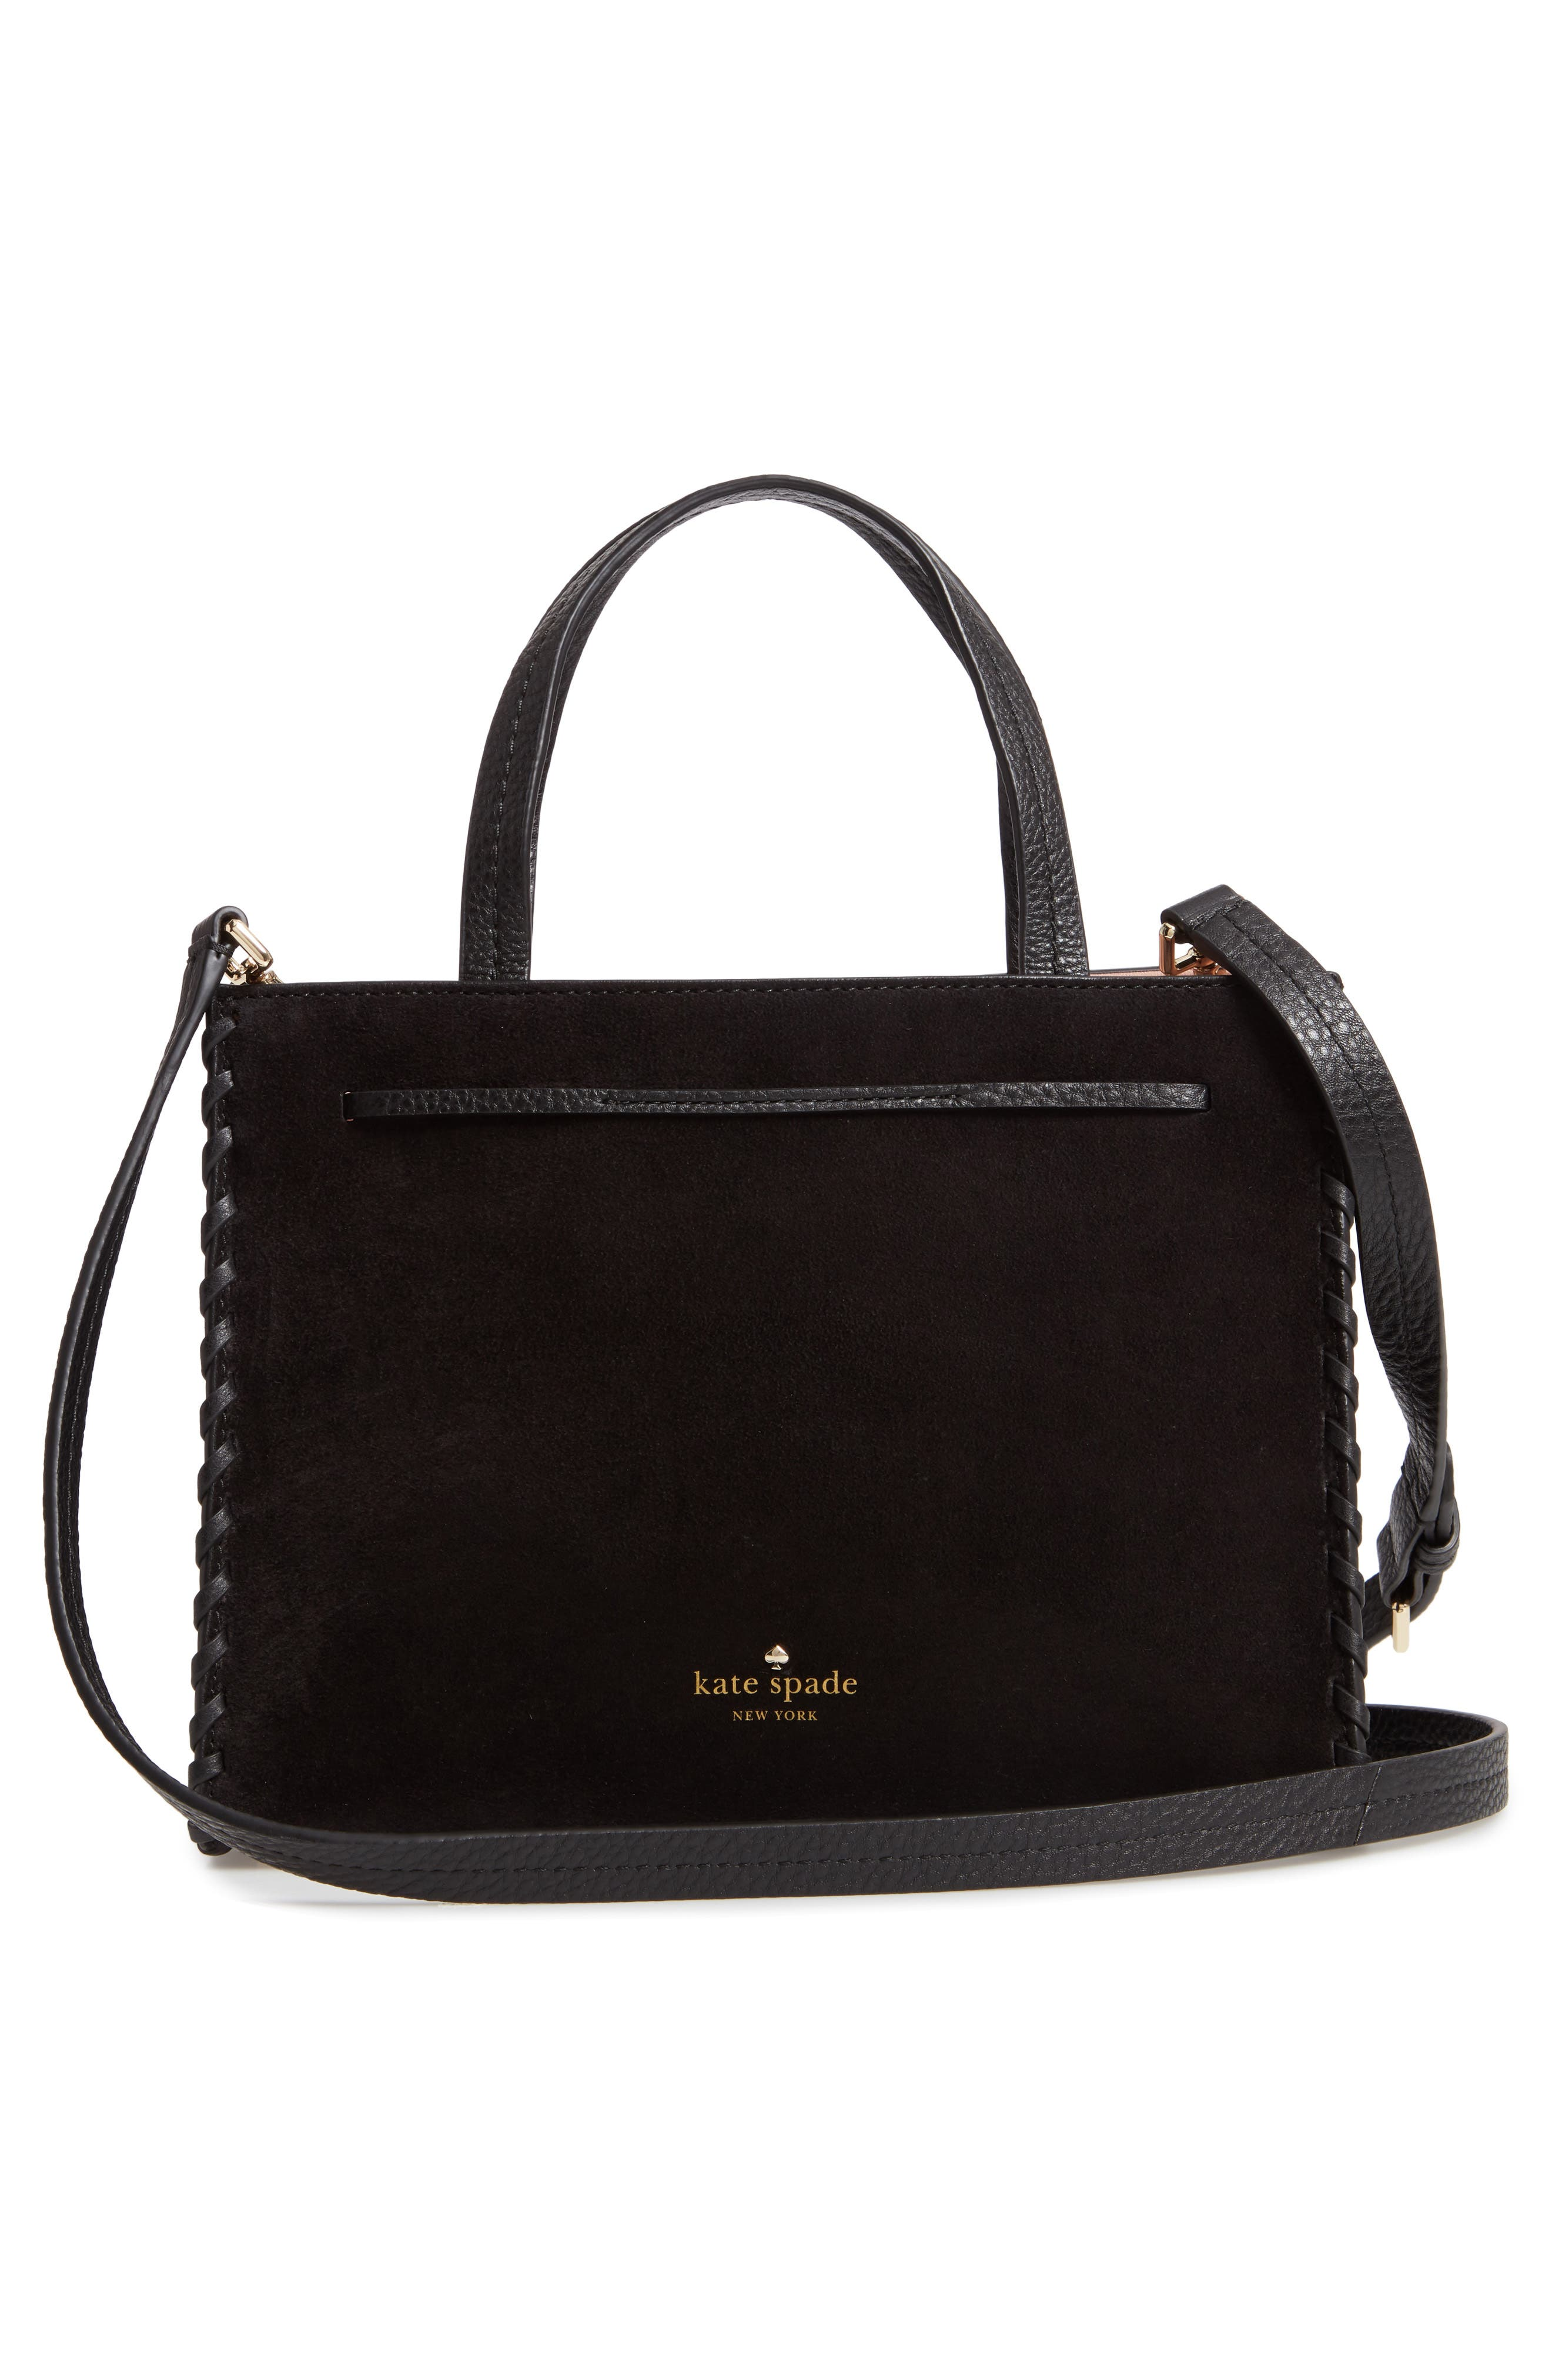 hayes street - rose studs suede & leather satchel,                             Alternate thumbnail 3, color,                             BLACK